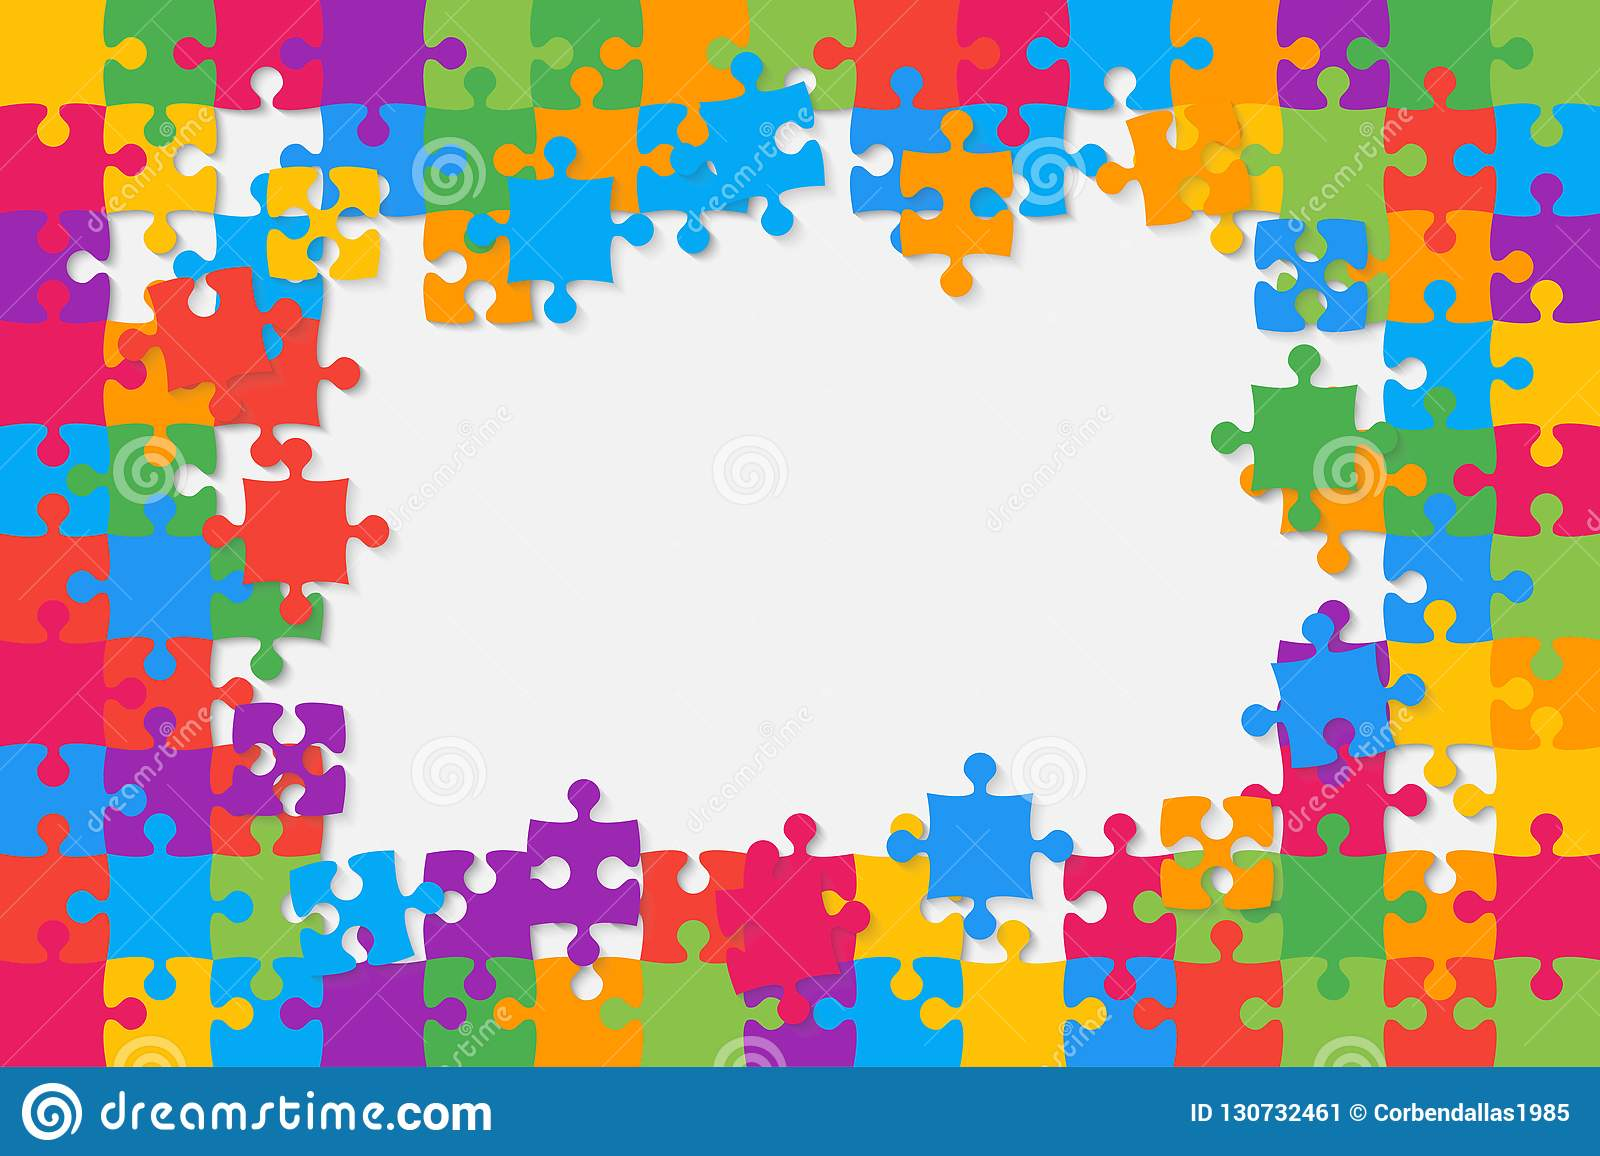 The Colorful Background Puzzle  Frame Of Puzzles  Stock